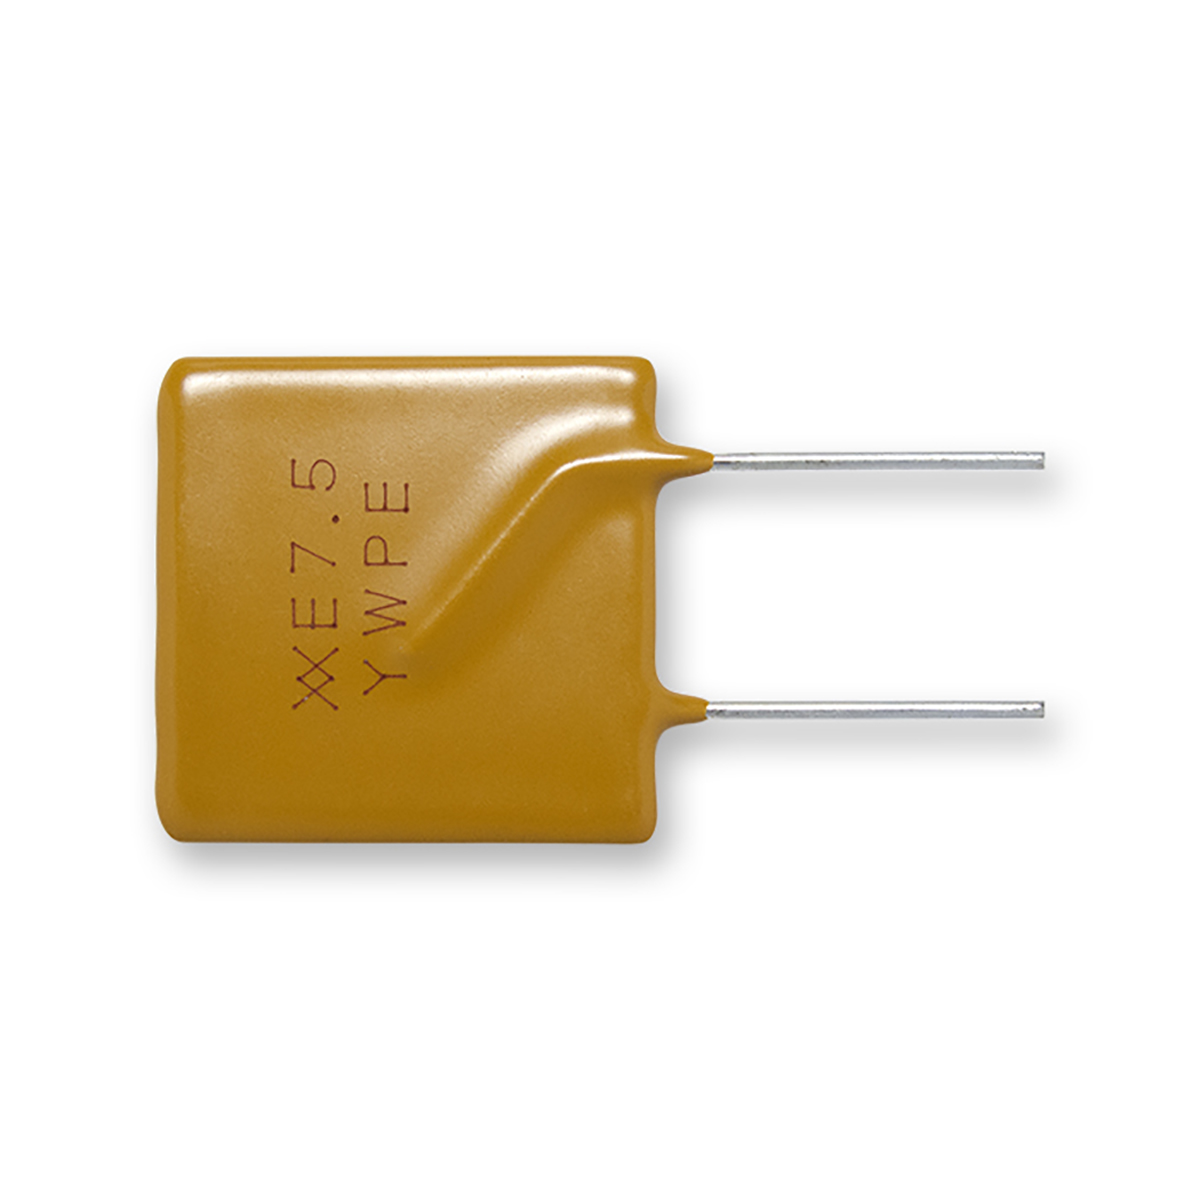 Ahef750 Ahef Series Radial Leaded From Resettable Ptcs Littelfuse Anlittlefusecircuitprotectionliionlipoly